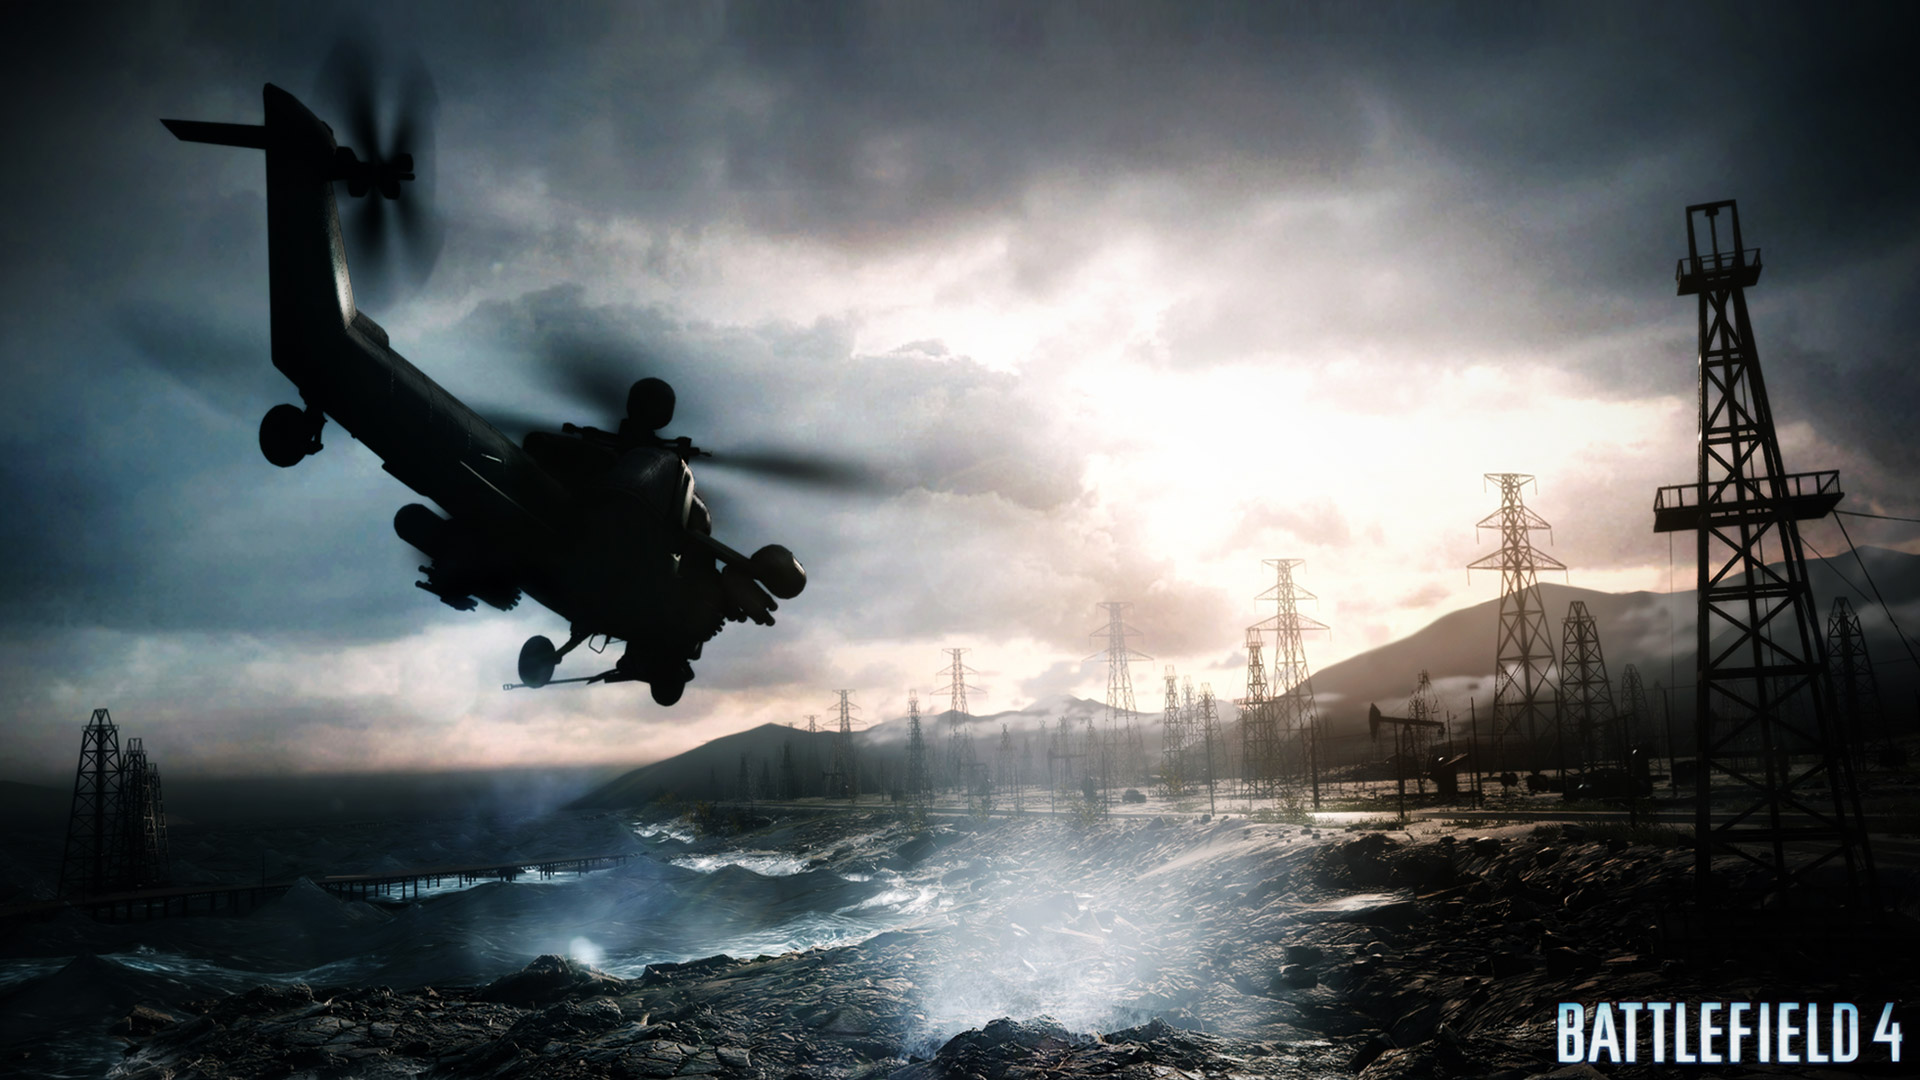 Battlefield 4 Wallpaper in 1920x1080